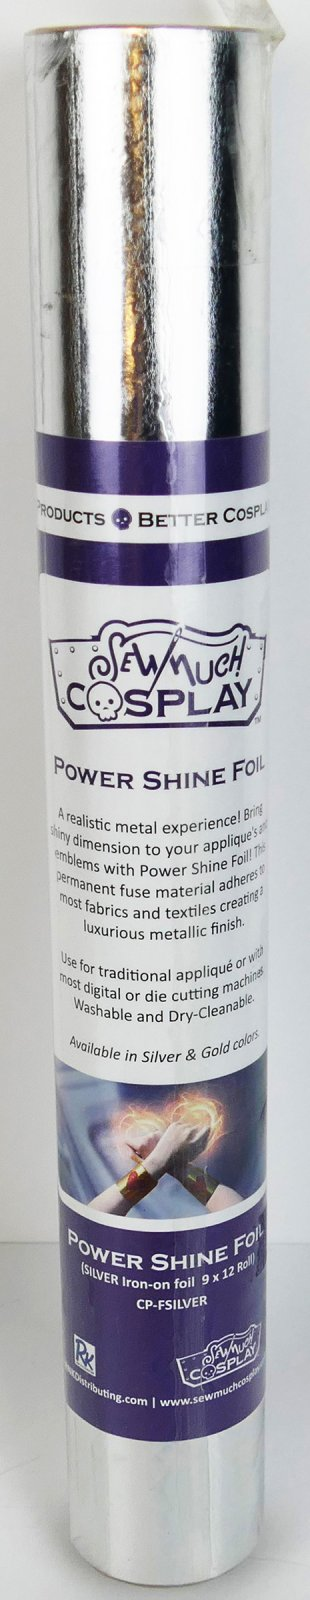 Power Shine Foil - Fusible Silver